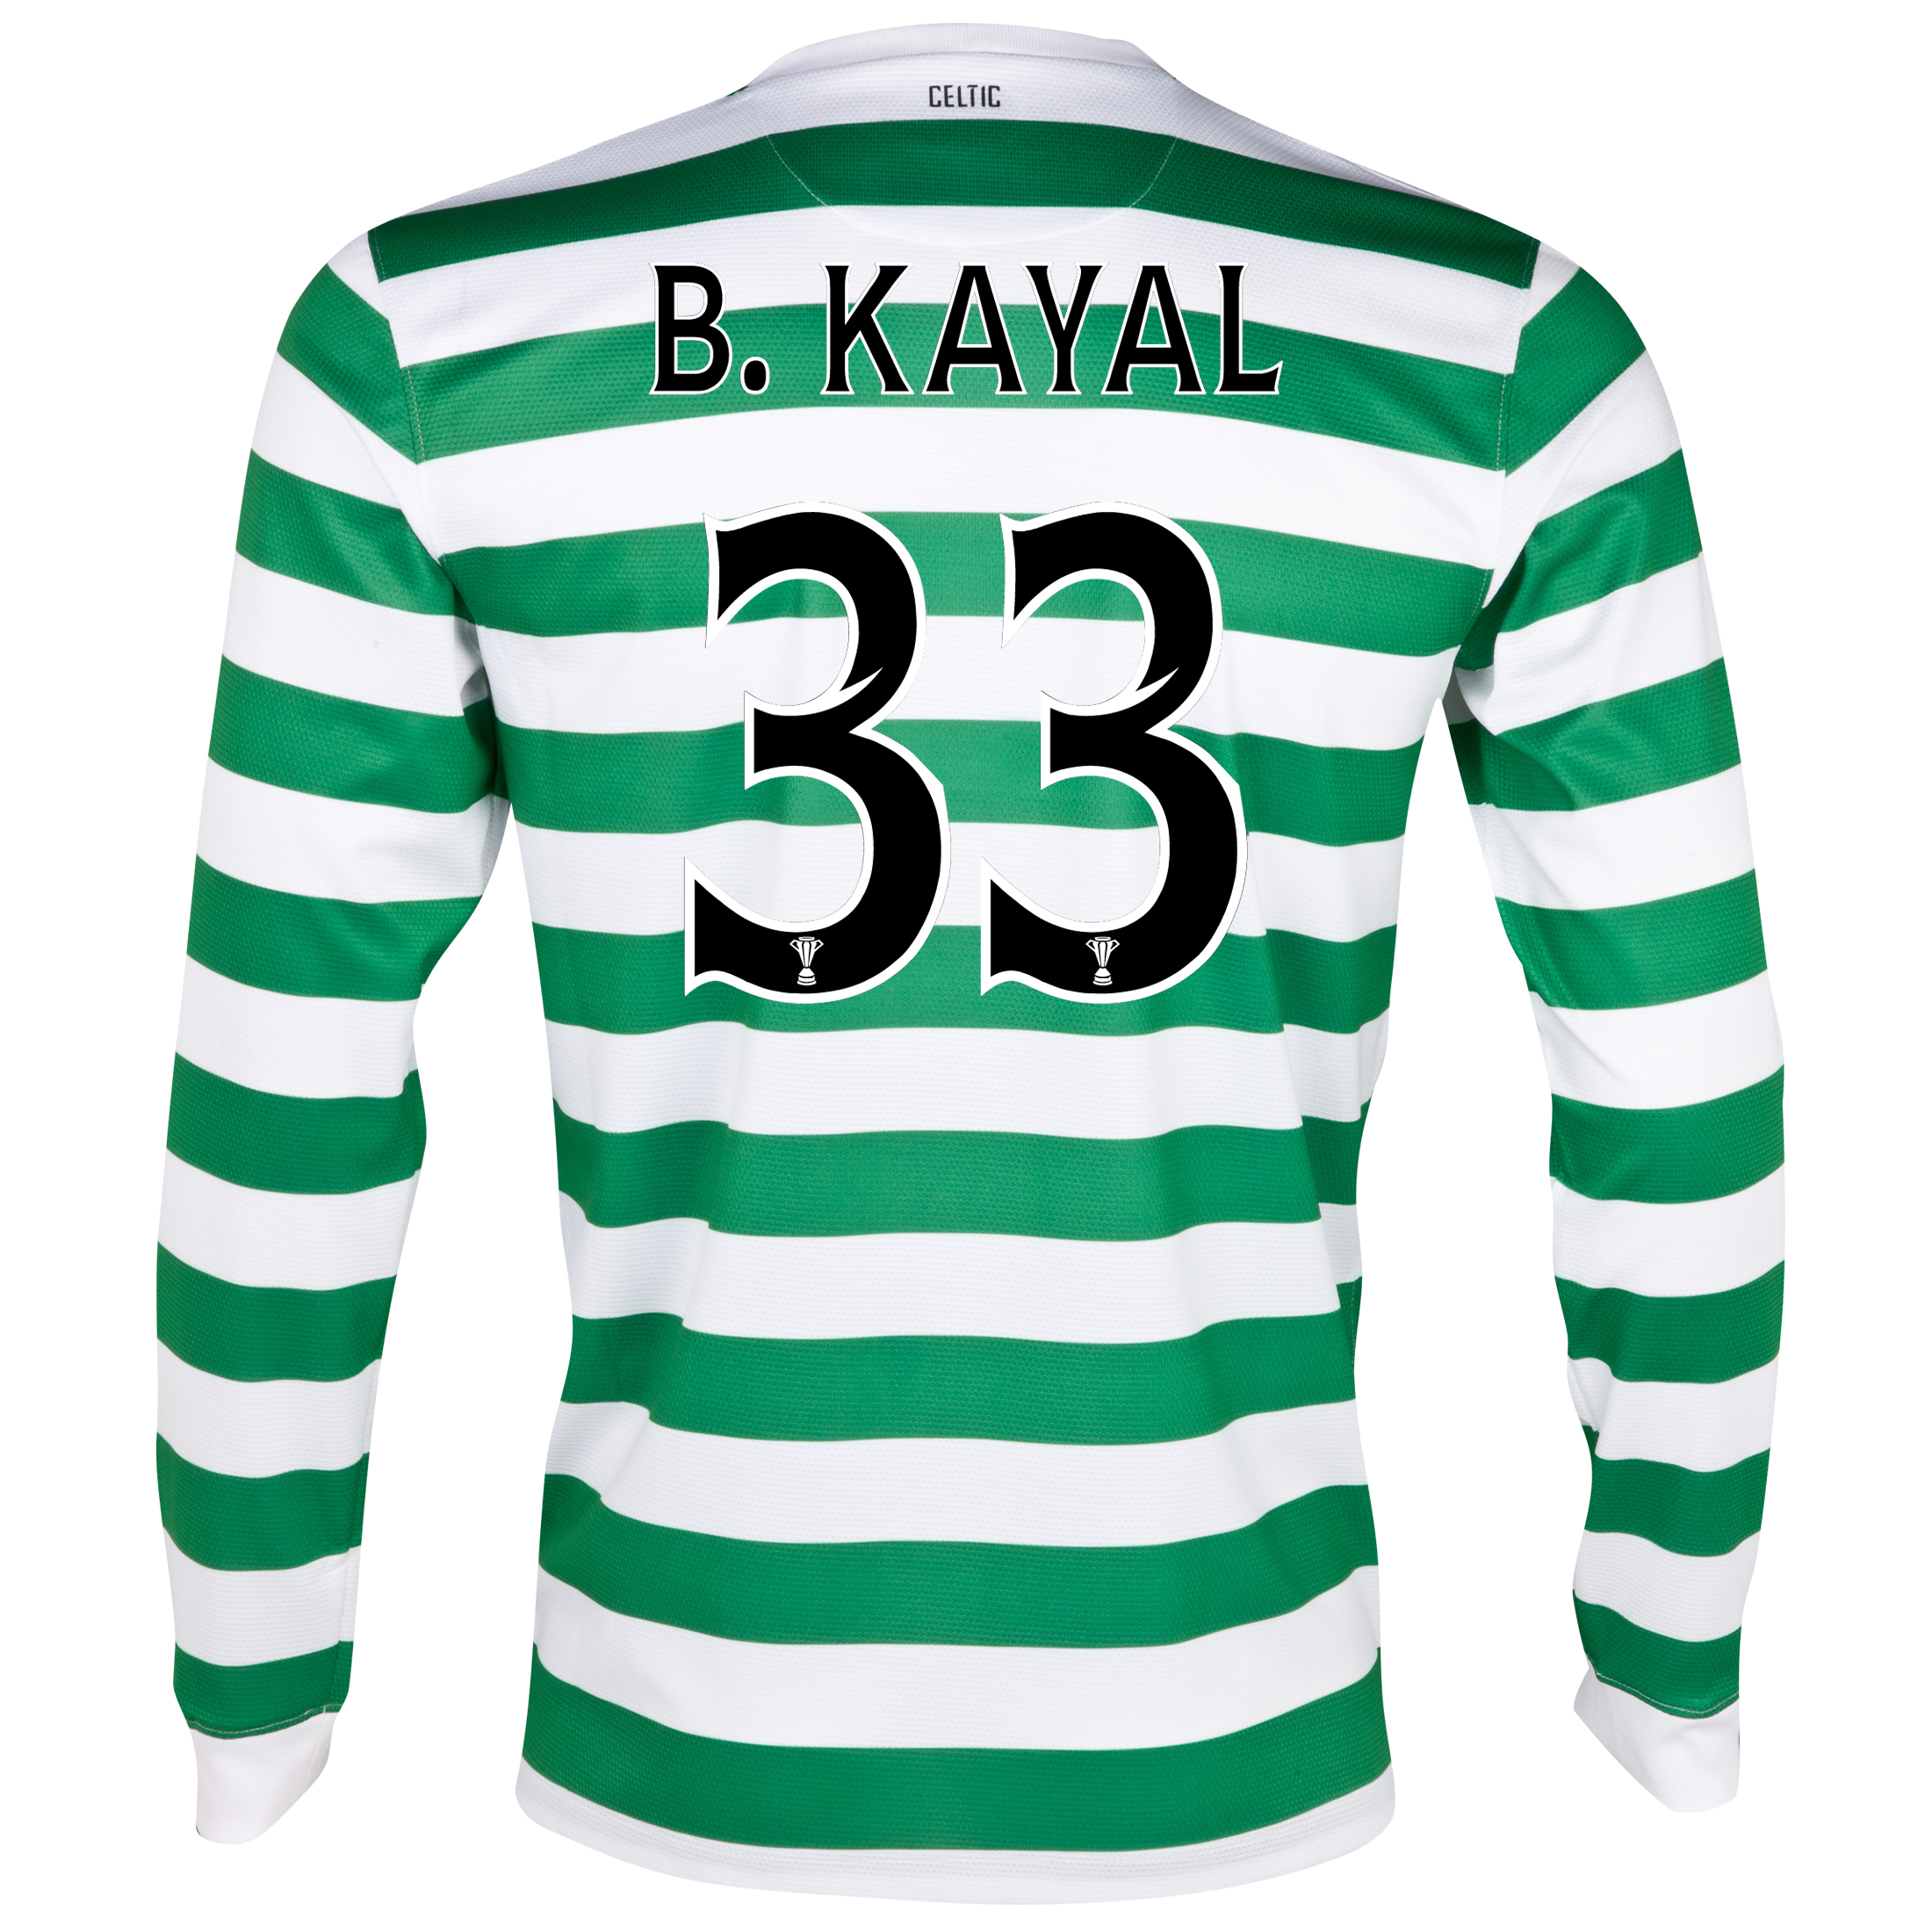 Celtic Home Shirt 2012/13 - Long Sleeved - No Sponsor with B.Kayal 33 printing